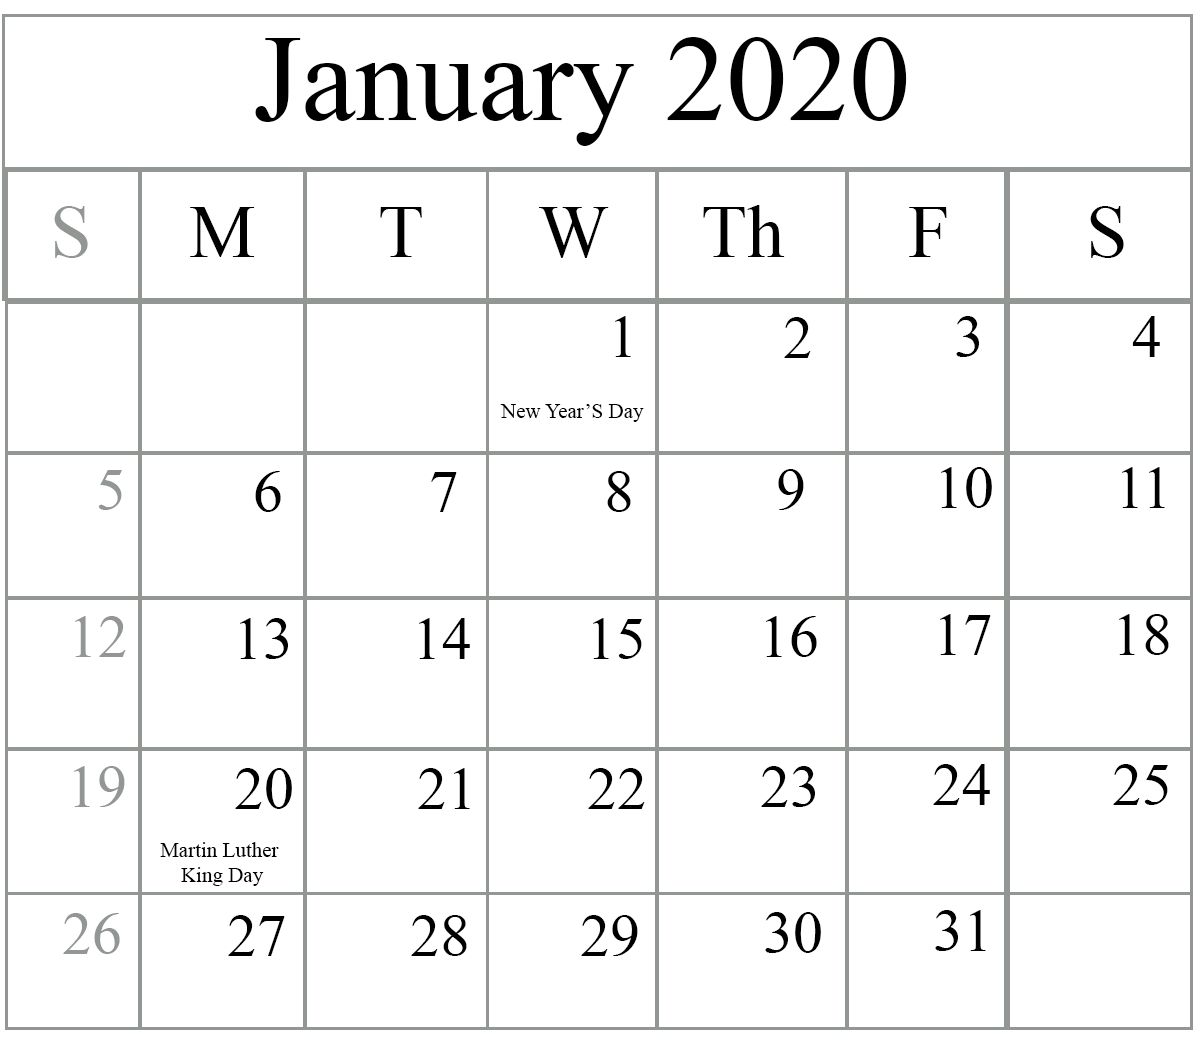 Free January 2020 Printable Calendar In Pdf, Excel & Word with regard to 2020 Calender I Can Edit